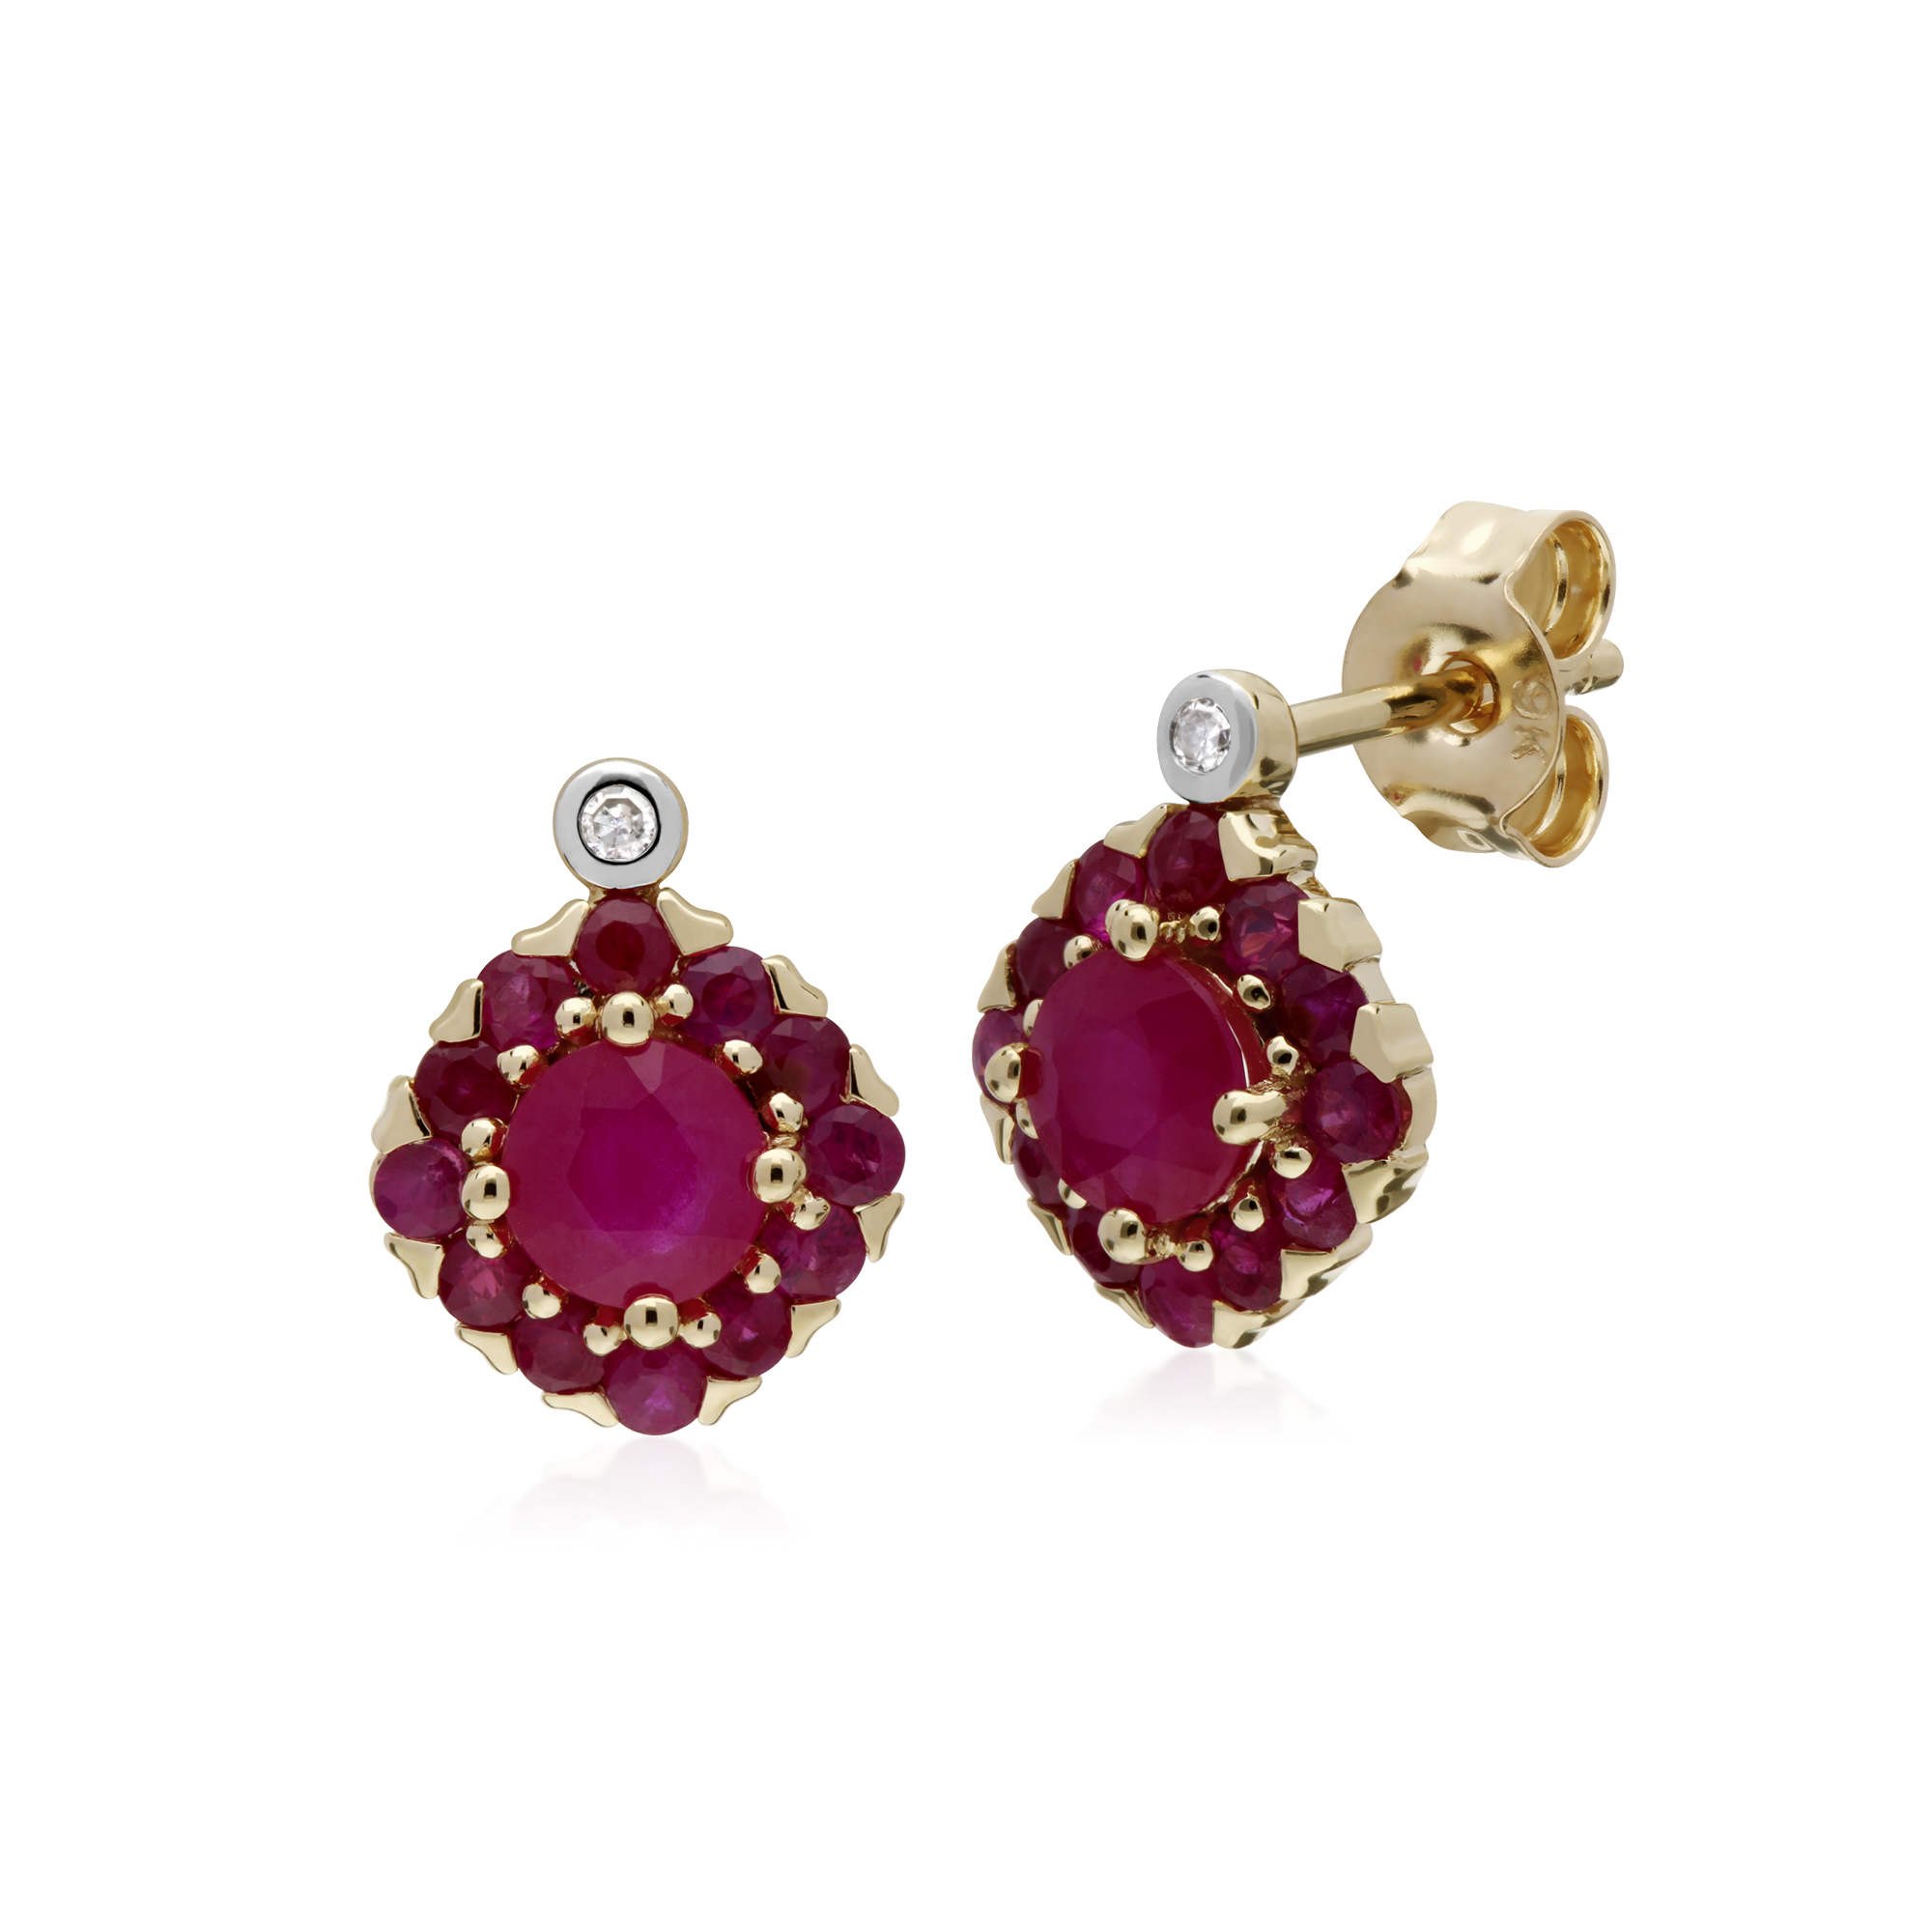 a267b2e66 Details about Gemondo 9ct Yellow Gold Ruby & Diamond Square Cluster Stud  Earrings